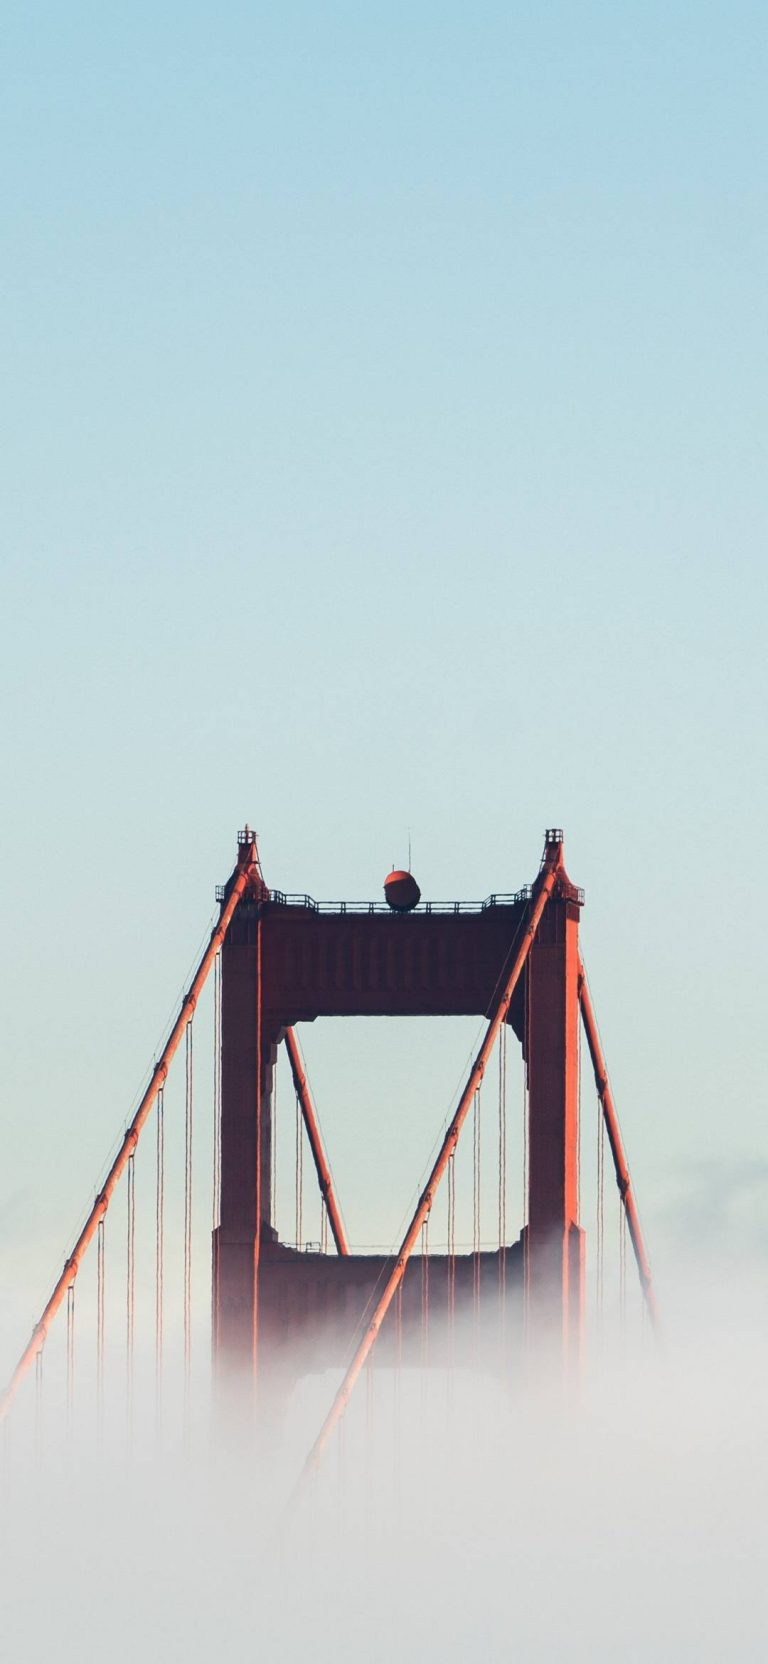 Bridge Touching The Sky. Wallpaper 1080x2340 768x1664